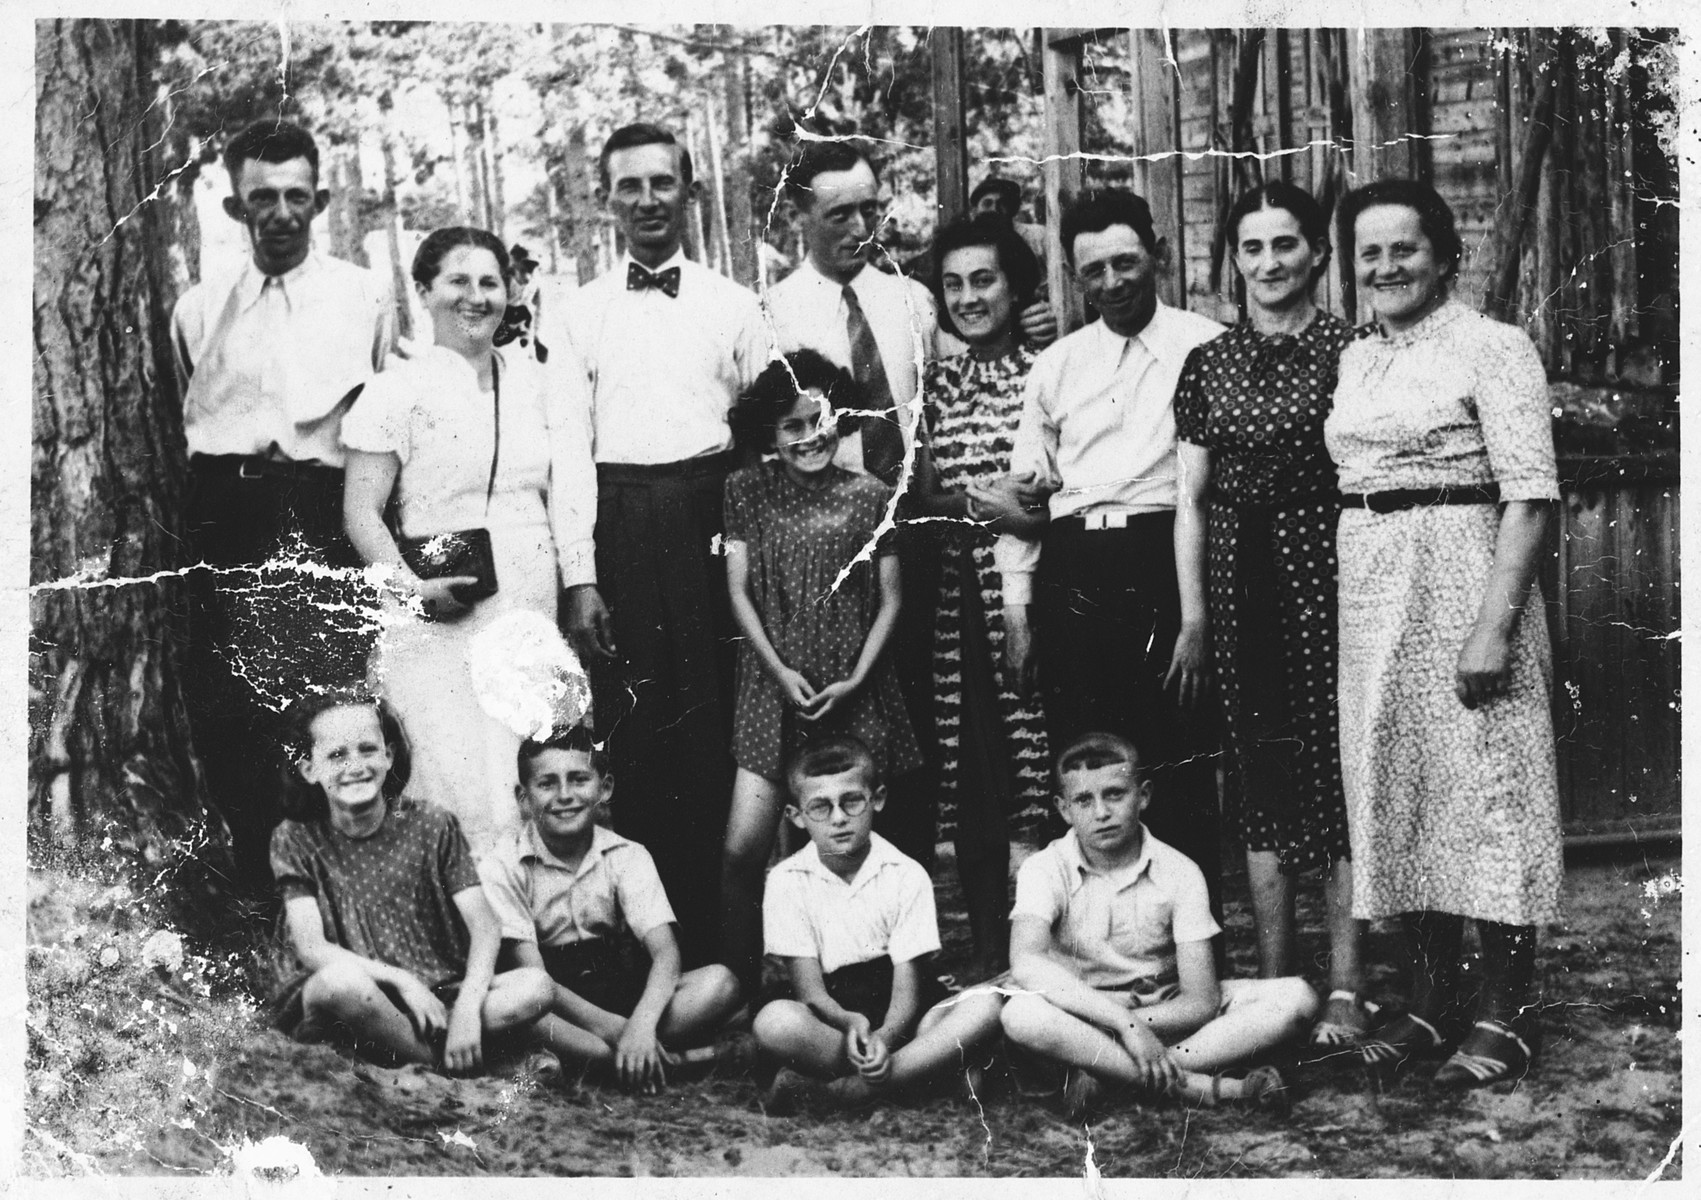 Prewar photograph of the extended Rosenbach family.  This photograph was discovered by a Christian neighbor in 1942 after the deportation of the Rosenbach family and returned to Lajziu after the war.